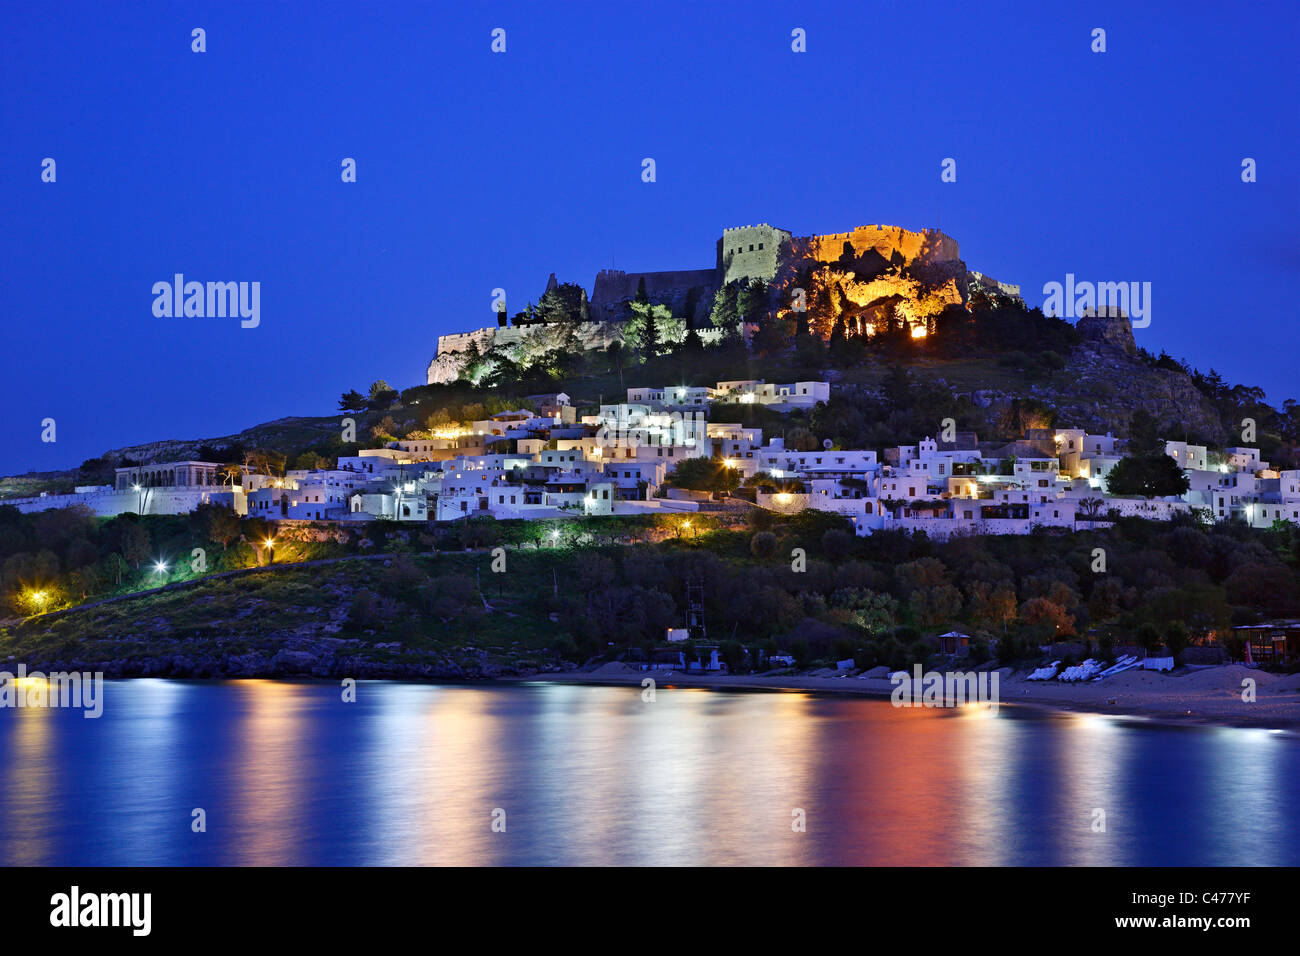 Beautiful Lindos village with its castle (Acropolis) in the 'blue' hour. Rhodes island, Dodecanese, Greece - Stock Image